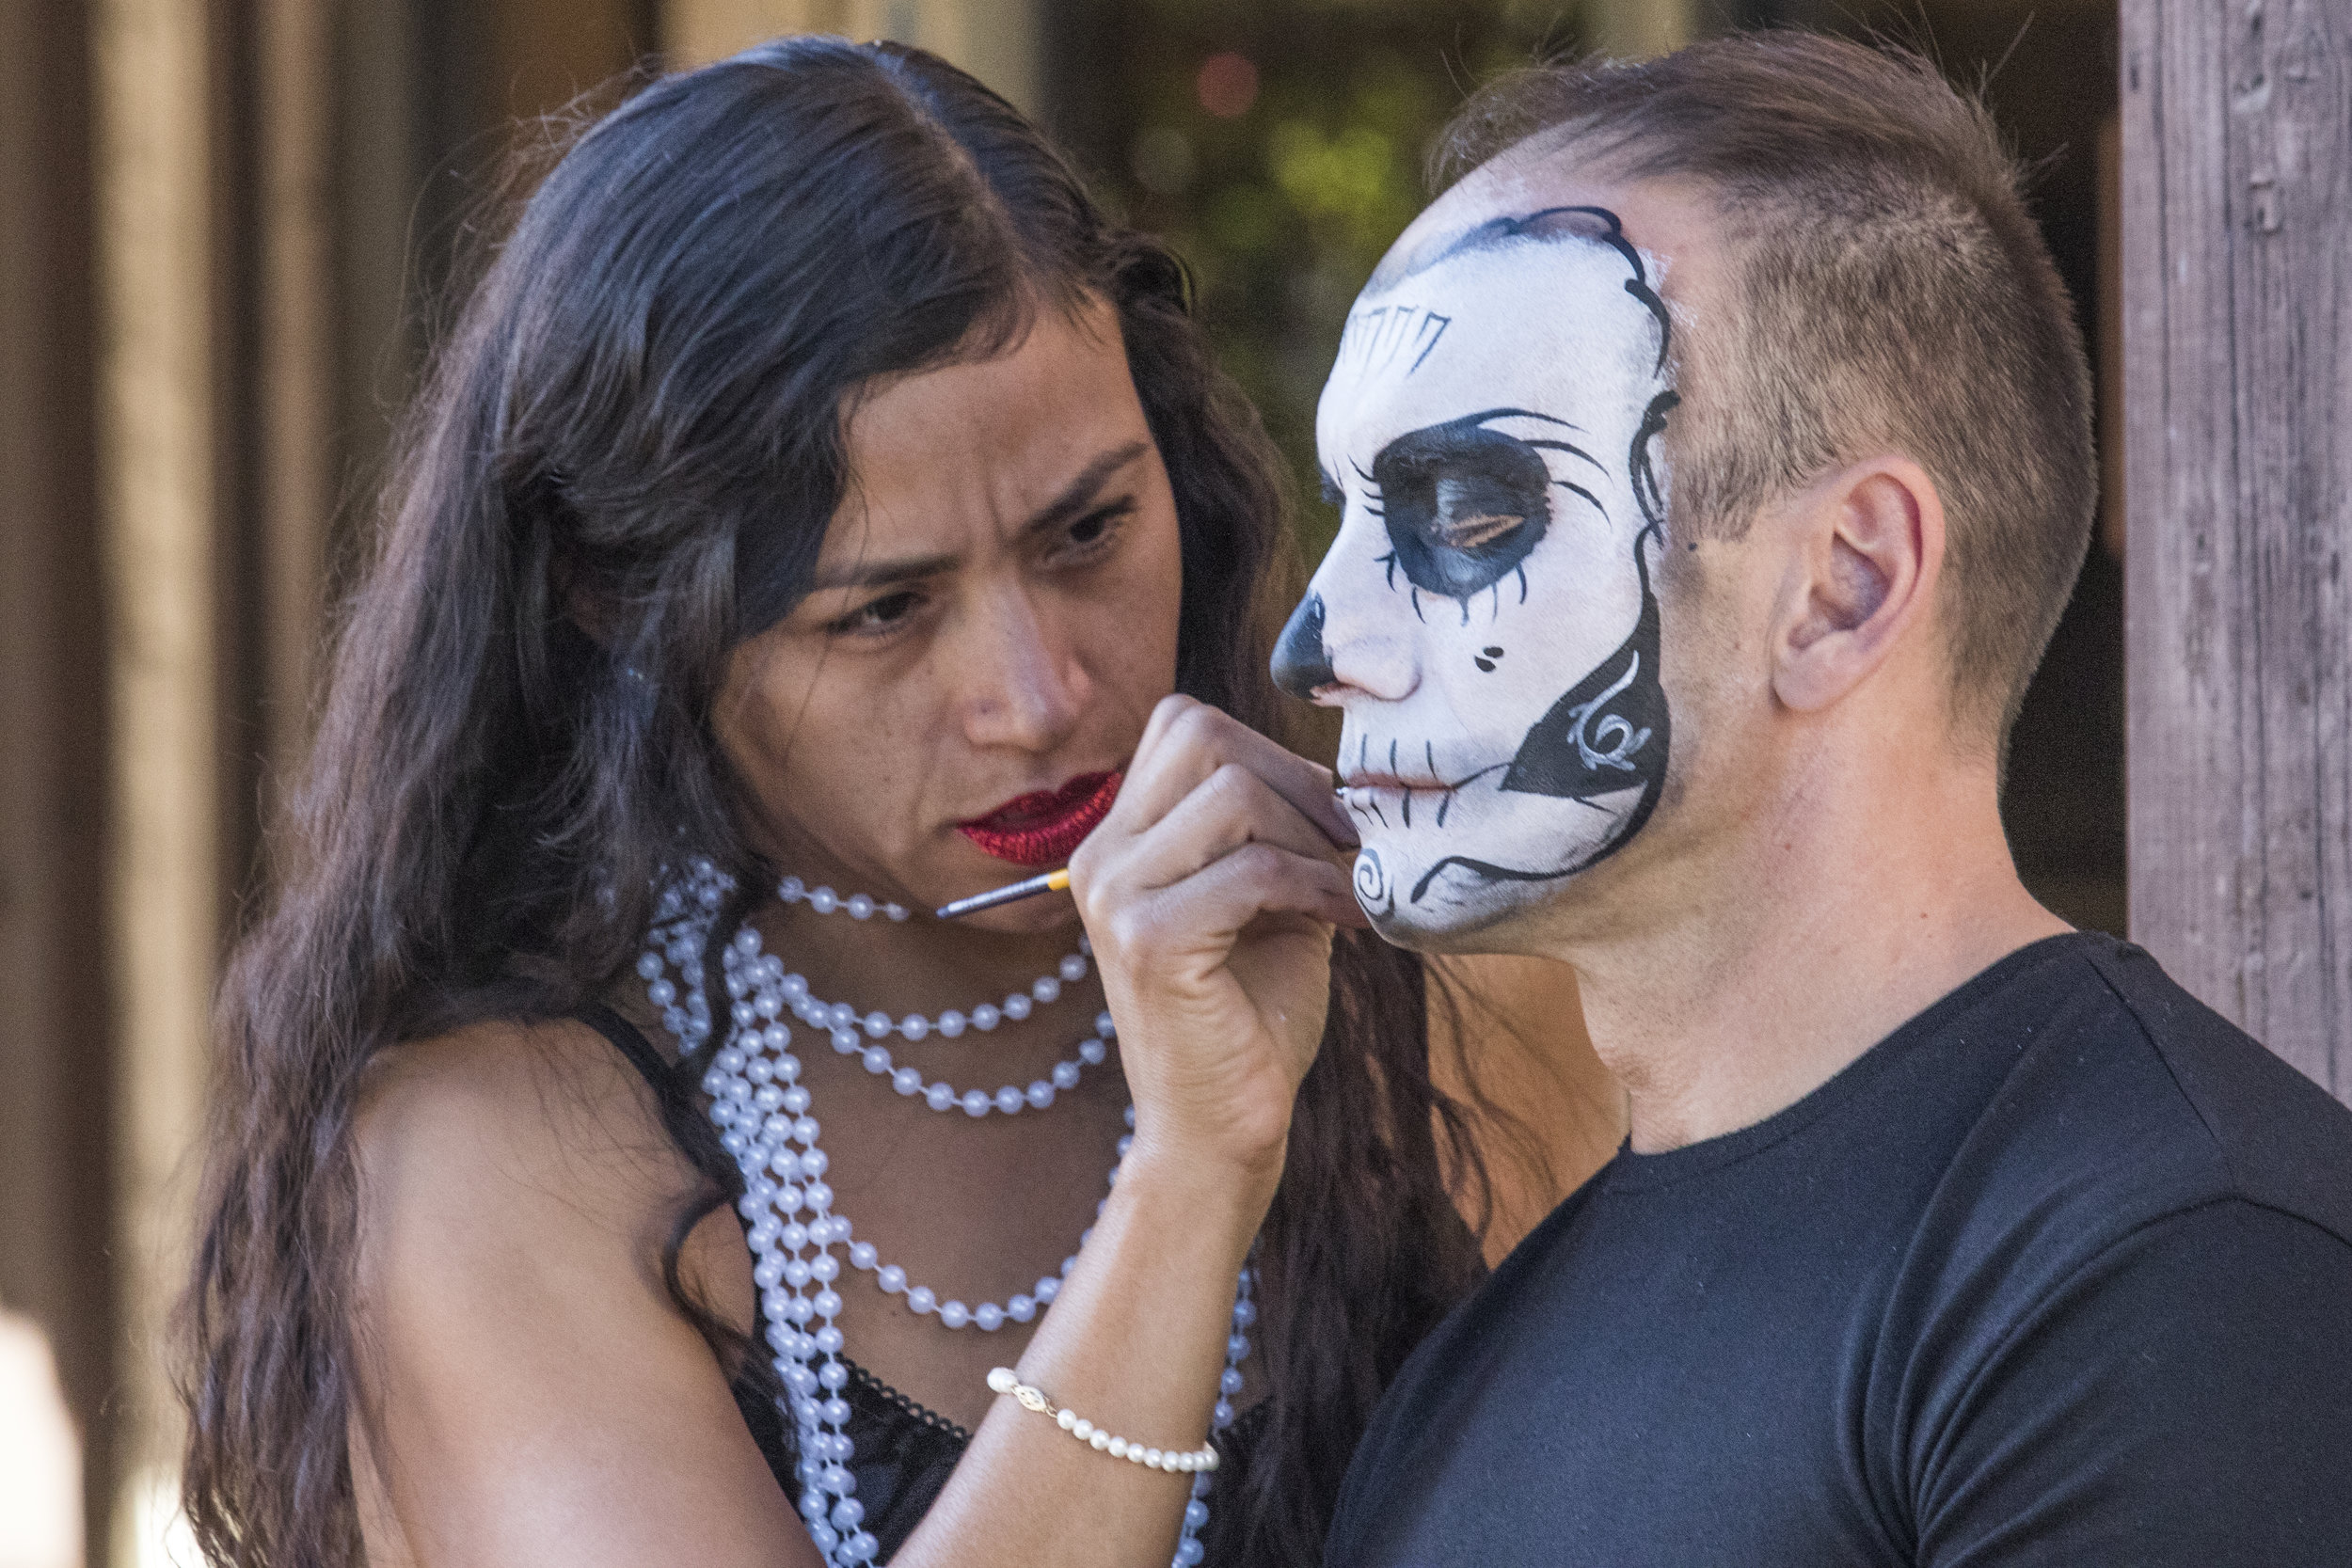 Carolina Hernandez (left) paints the face of one of her customers on October 31, 2018 at her face-painting booth on Olvera Street, in downton Los Angeles, California. Carolina is part of the 3rd generation of her family to work on Olvera Street. She says that business has been worse due to the homeless population and that the city council made a homeless shelter neighboring Olvera Street and did not notify any of the shop owners until it was already decided on. Her, and all the other shop owners had no say in the matter and no time to protest the decision. (Zane Meyer-Thornton/Corsair Photo)